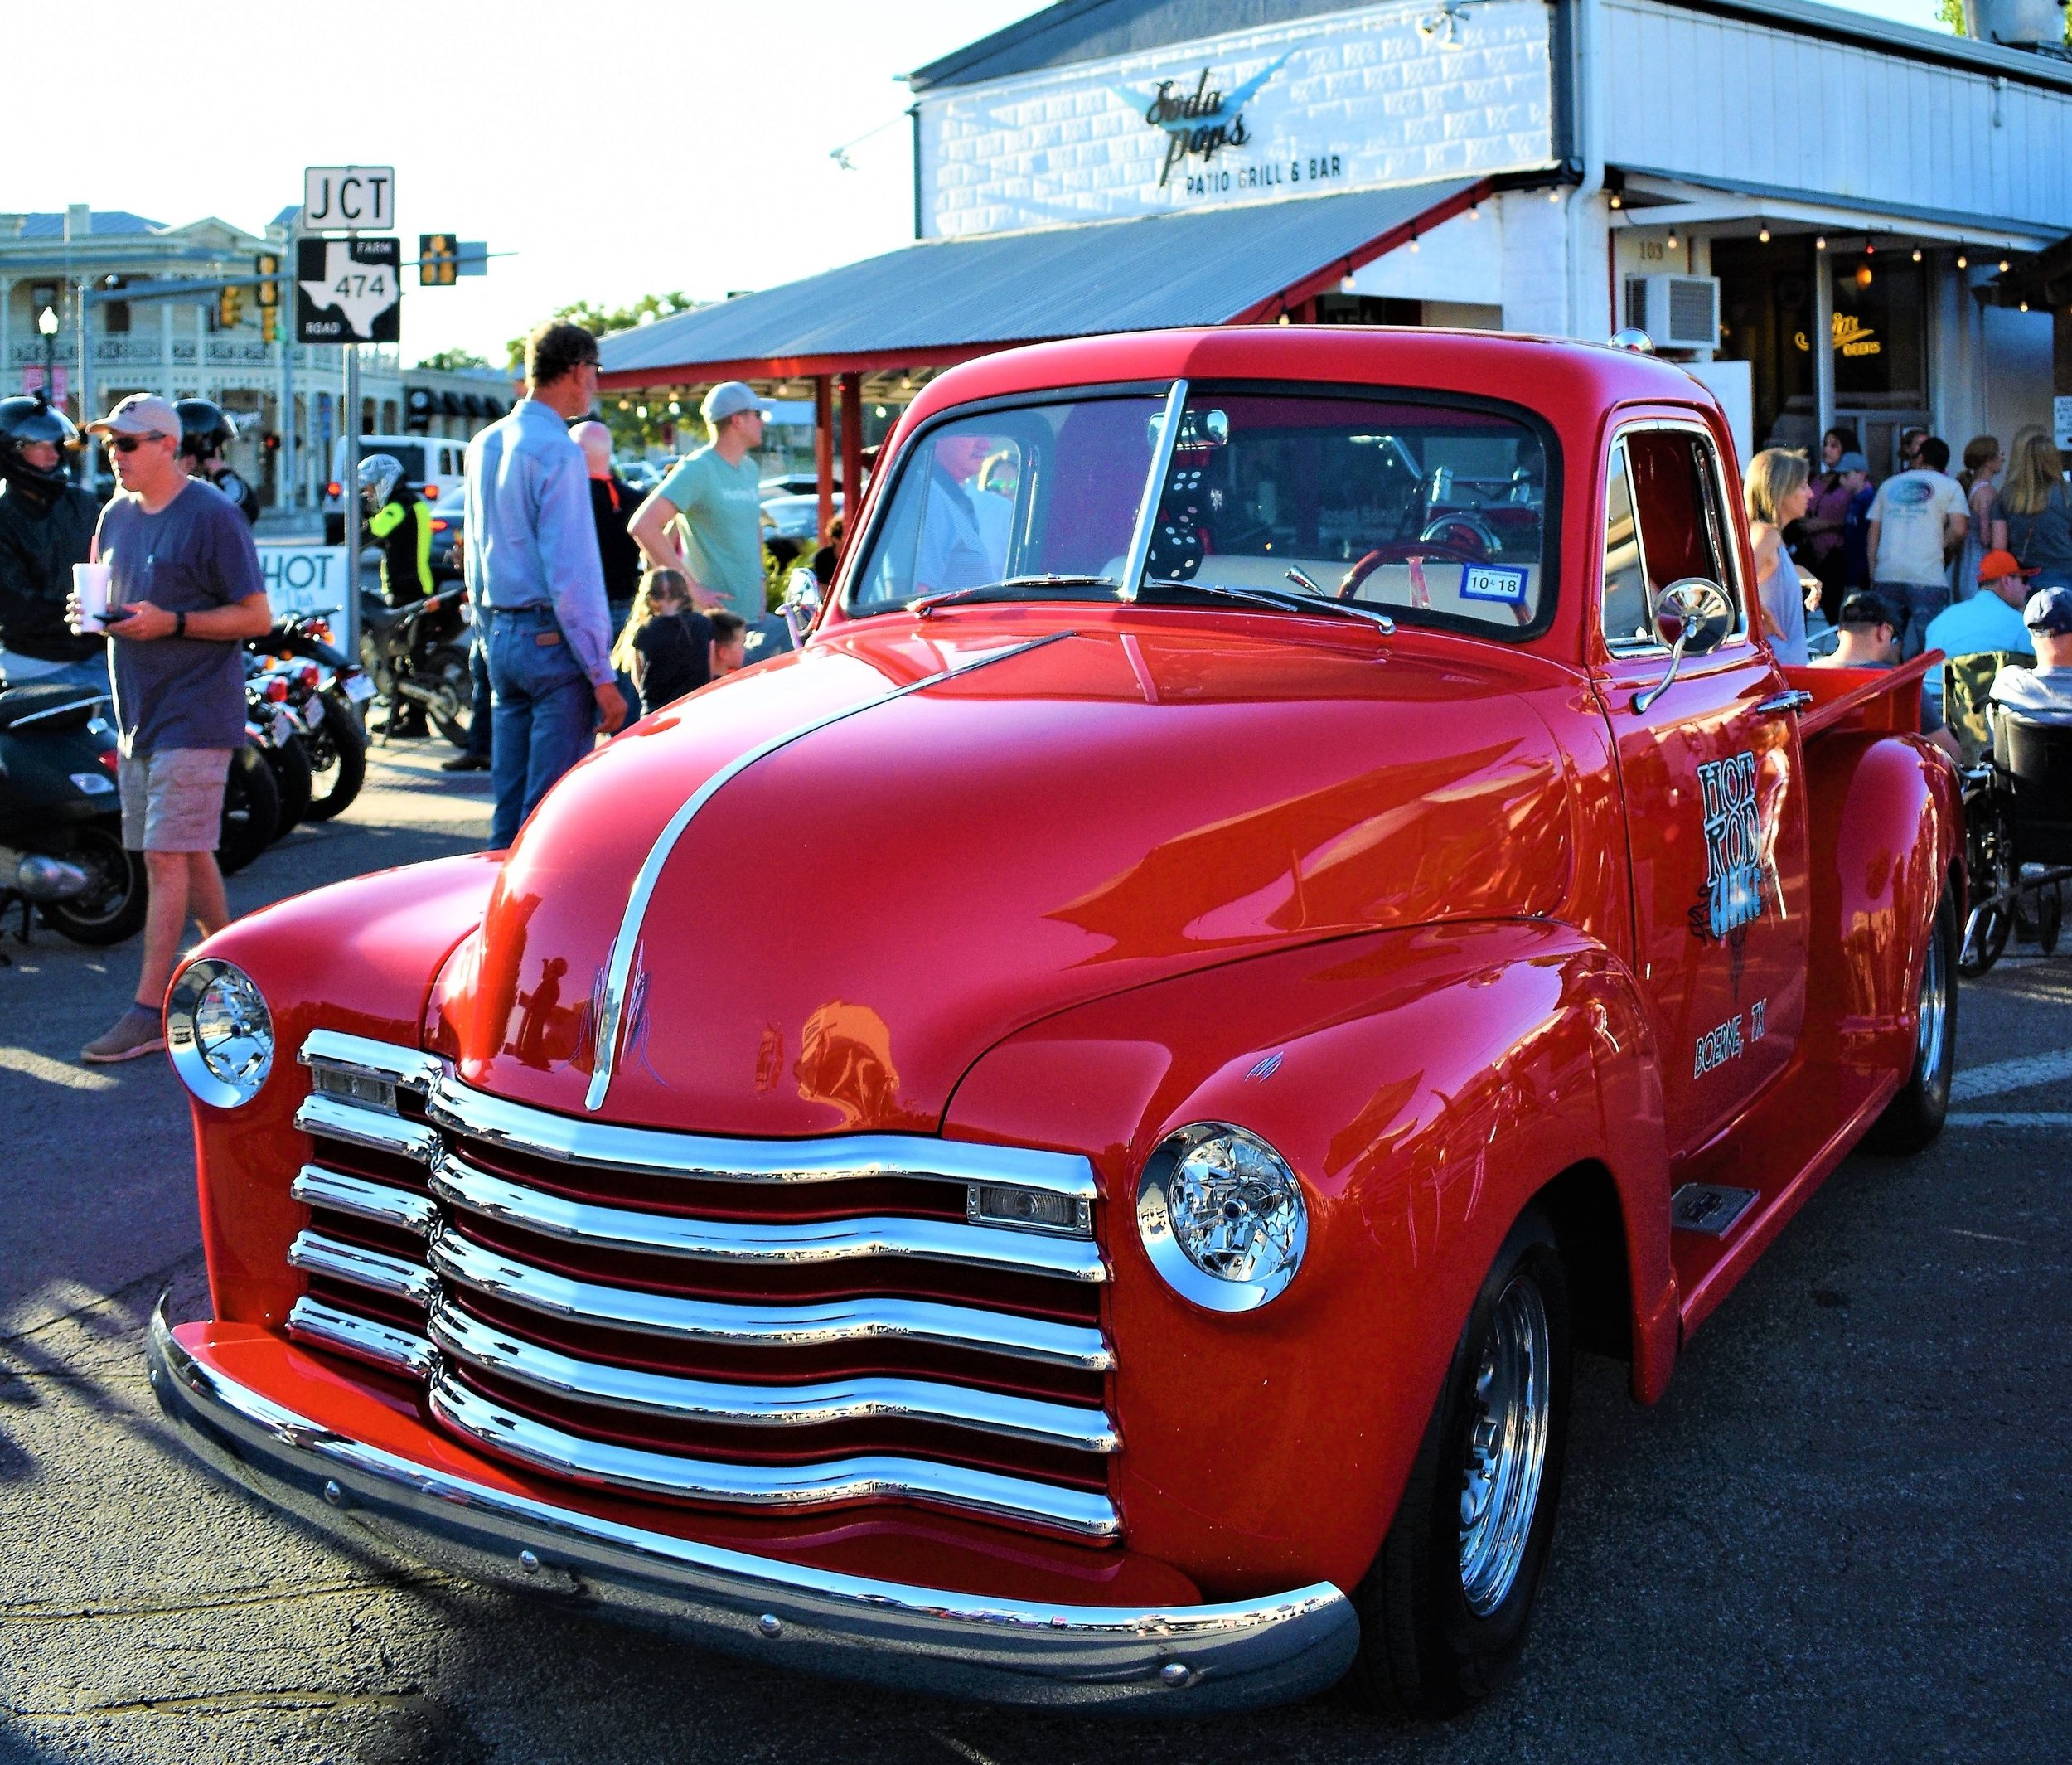 hot rod night at soda pop's boerne texas sowing seeds blog